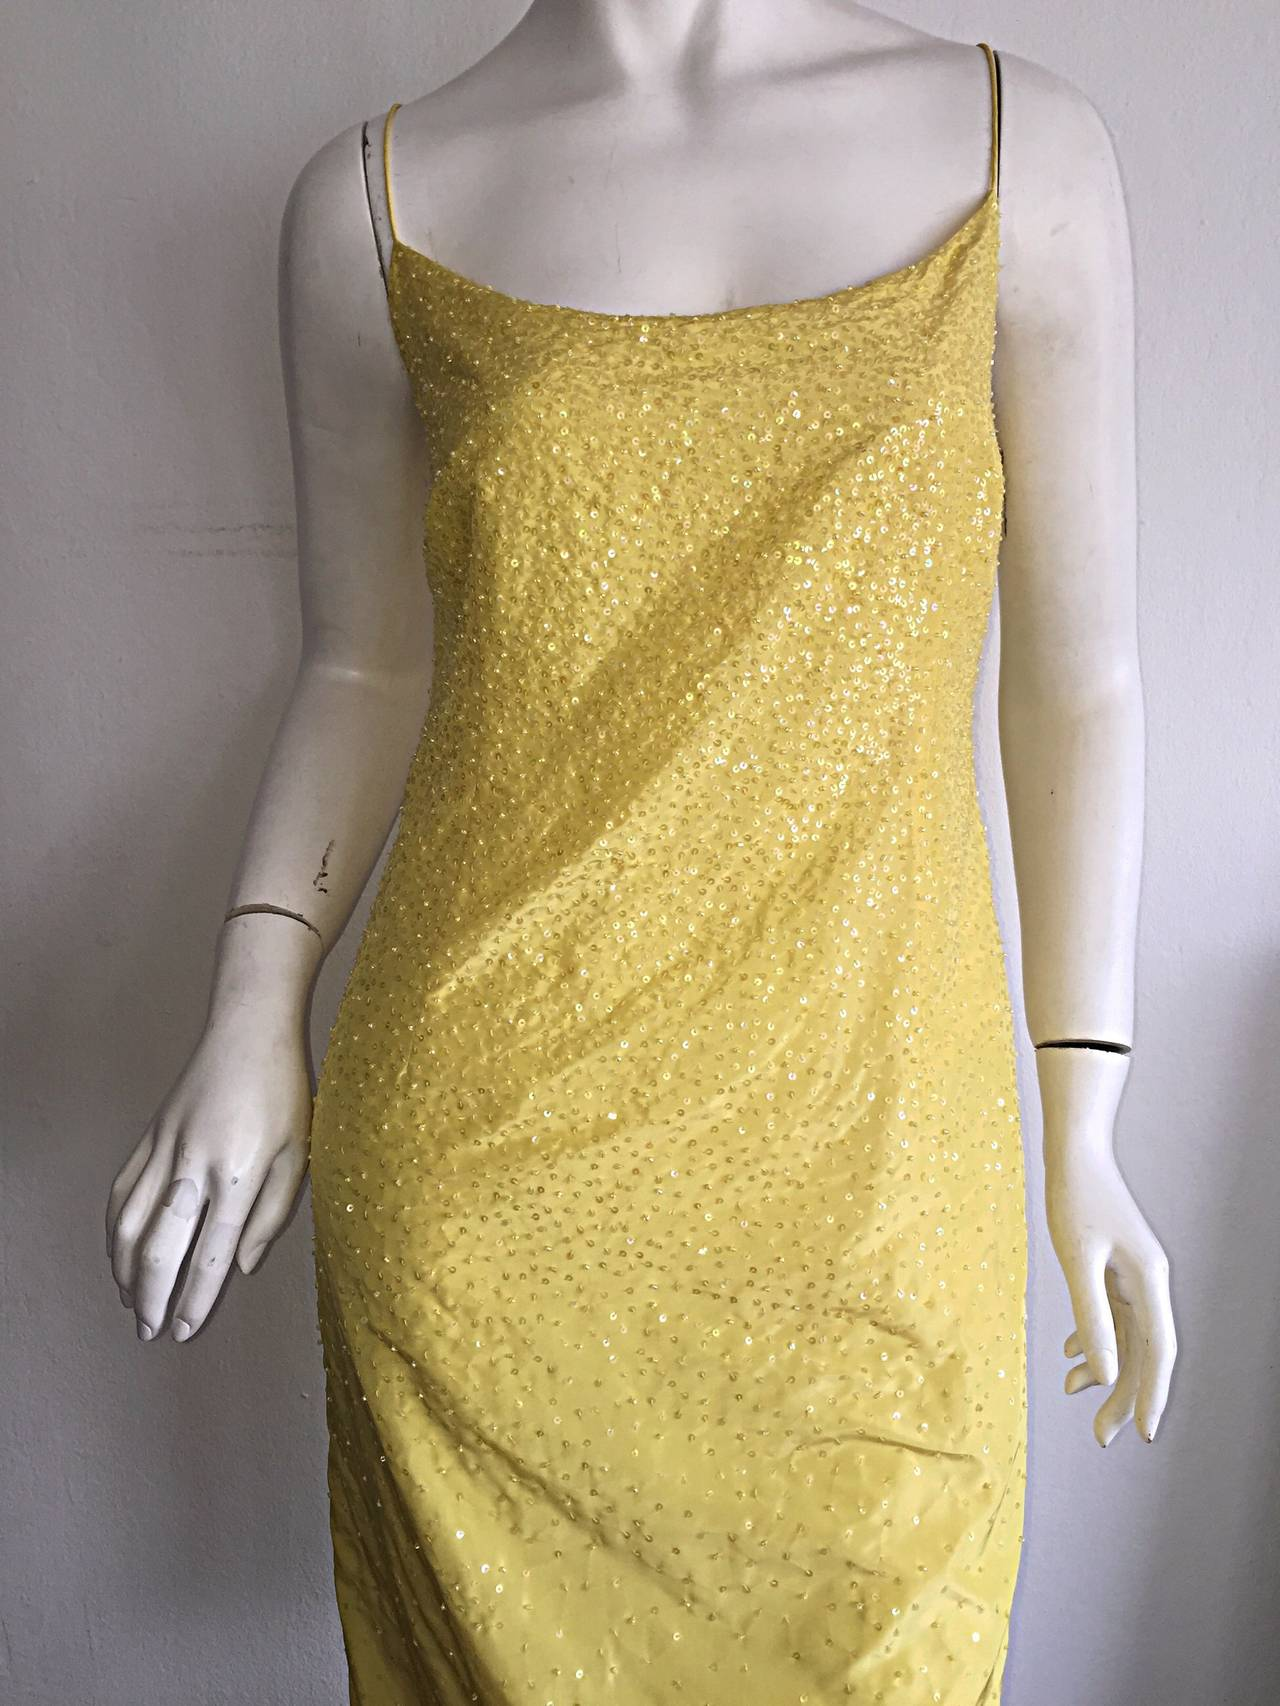 Stunning vintage Donna Karan canary yellow beaded silk dress! Thin spaghetti straps, with a figure flattering shape! Beads and sequins throughout front and back. Looks great alone, or can easily be belted. Perfect with sandals, wedges or heels! In